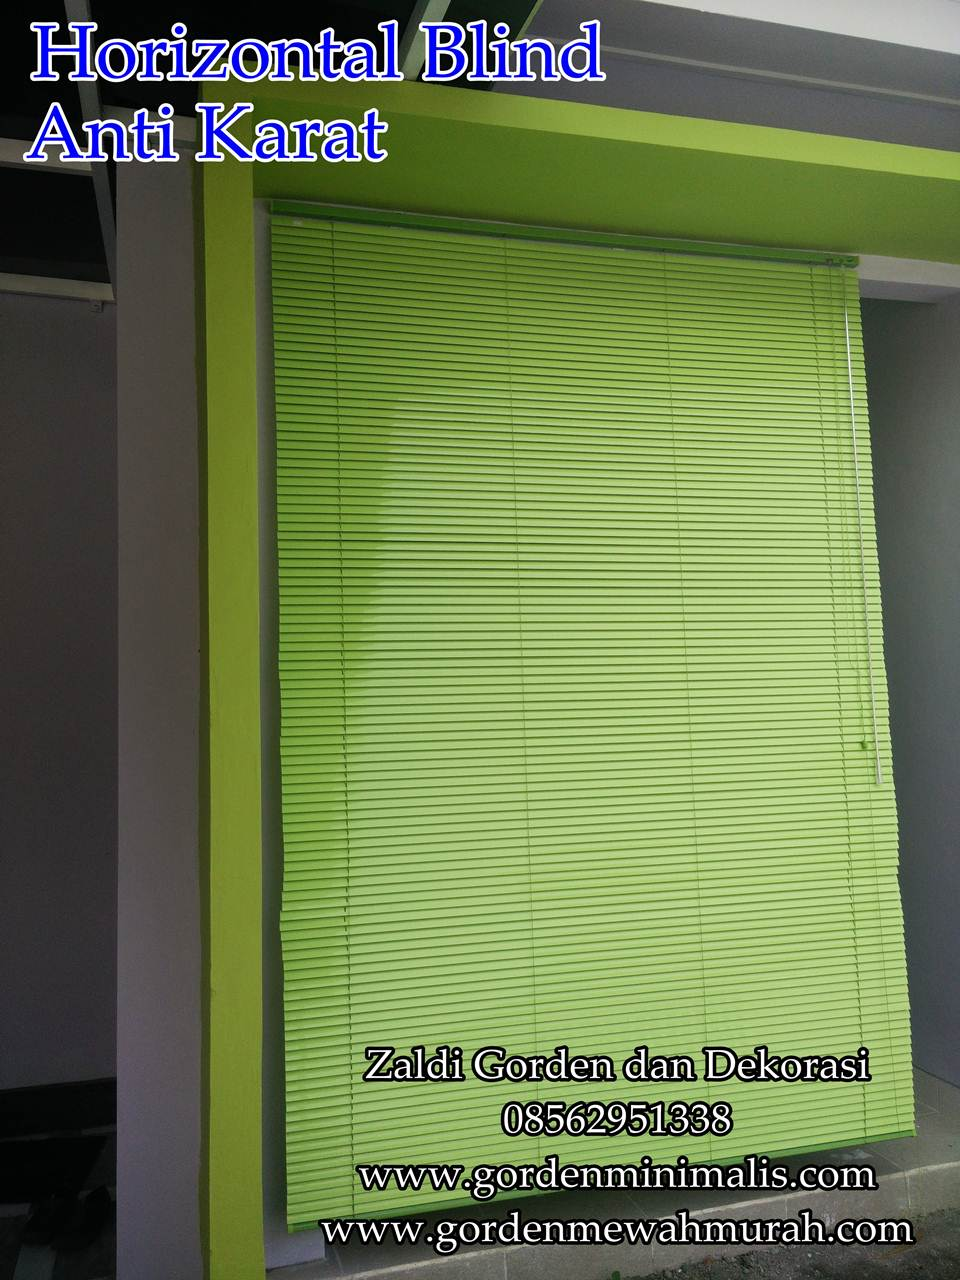 Jual Horizontal blind murah horizontal blind kayu horizontal blind onna merk sharp point harga horizontal blind terbaru